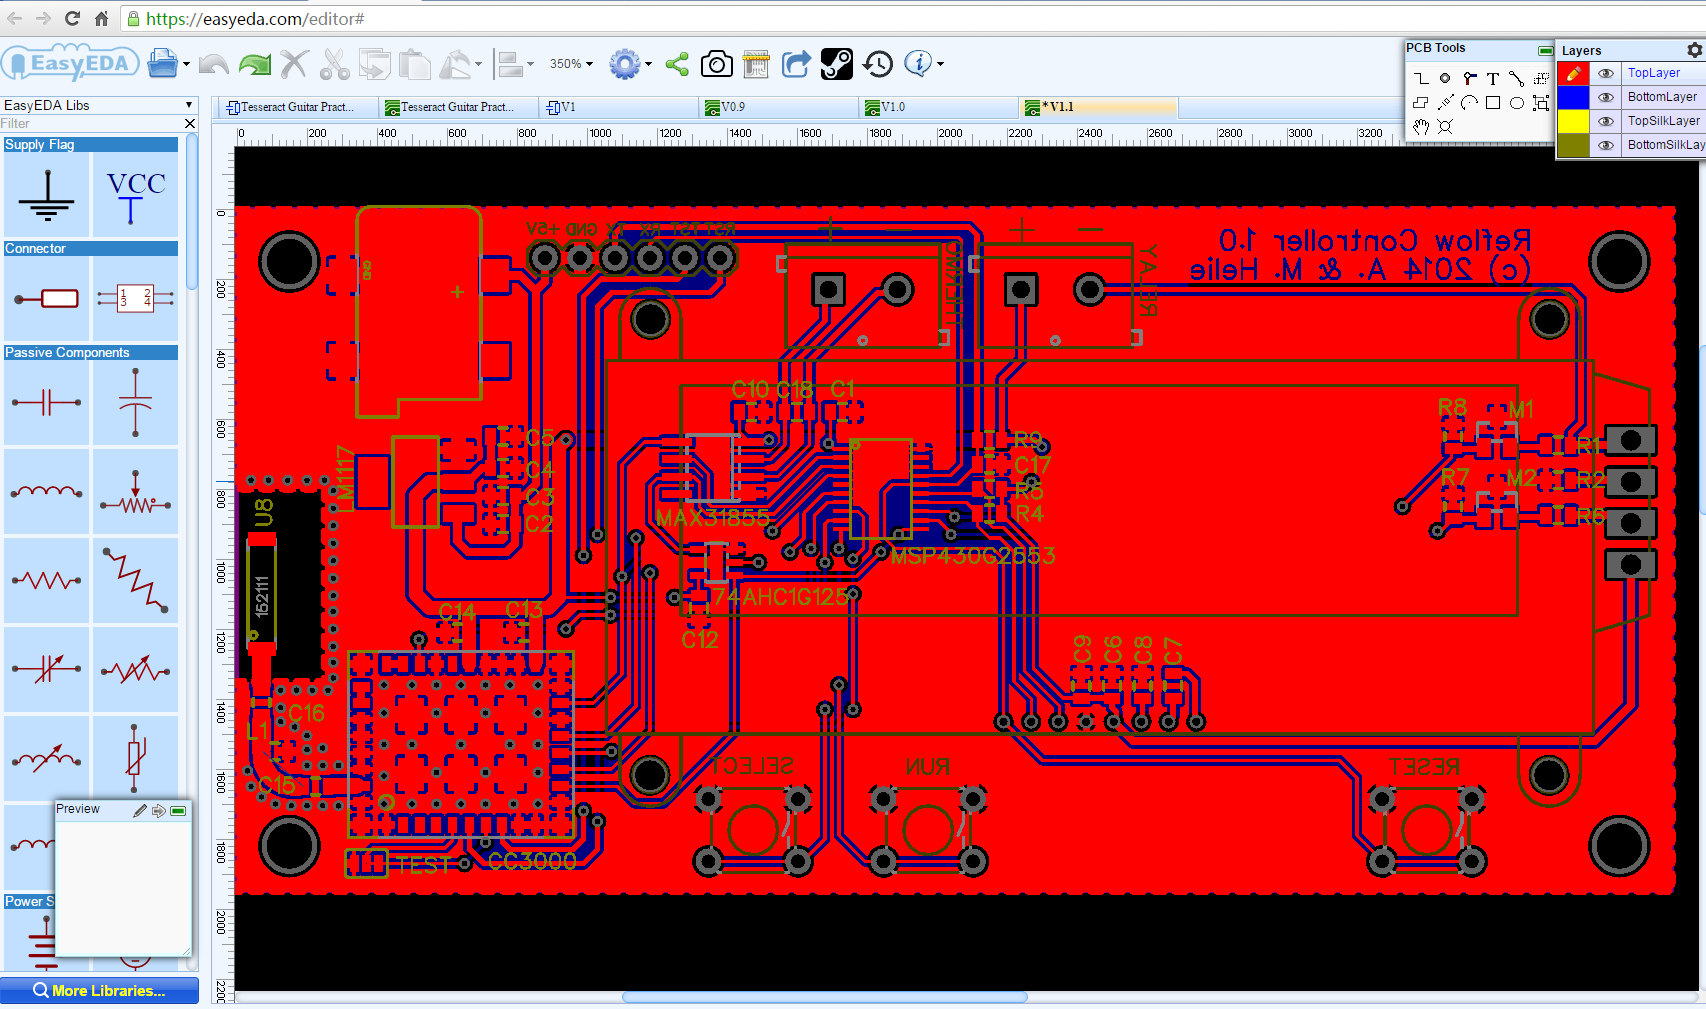 Online Electronic Circuit Wiring Diagram And Ebooks Maker Schematic To Pcb Easyeda For Design Rh Com Drawing